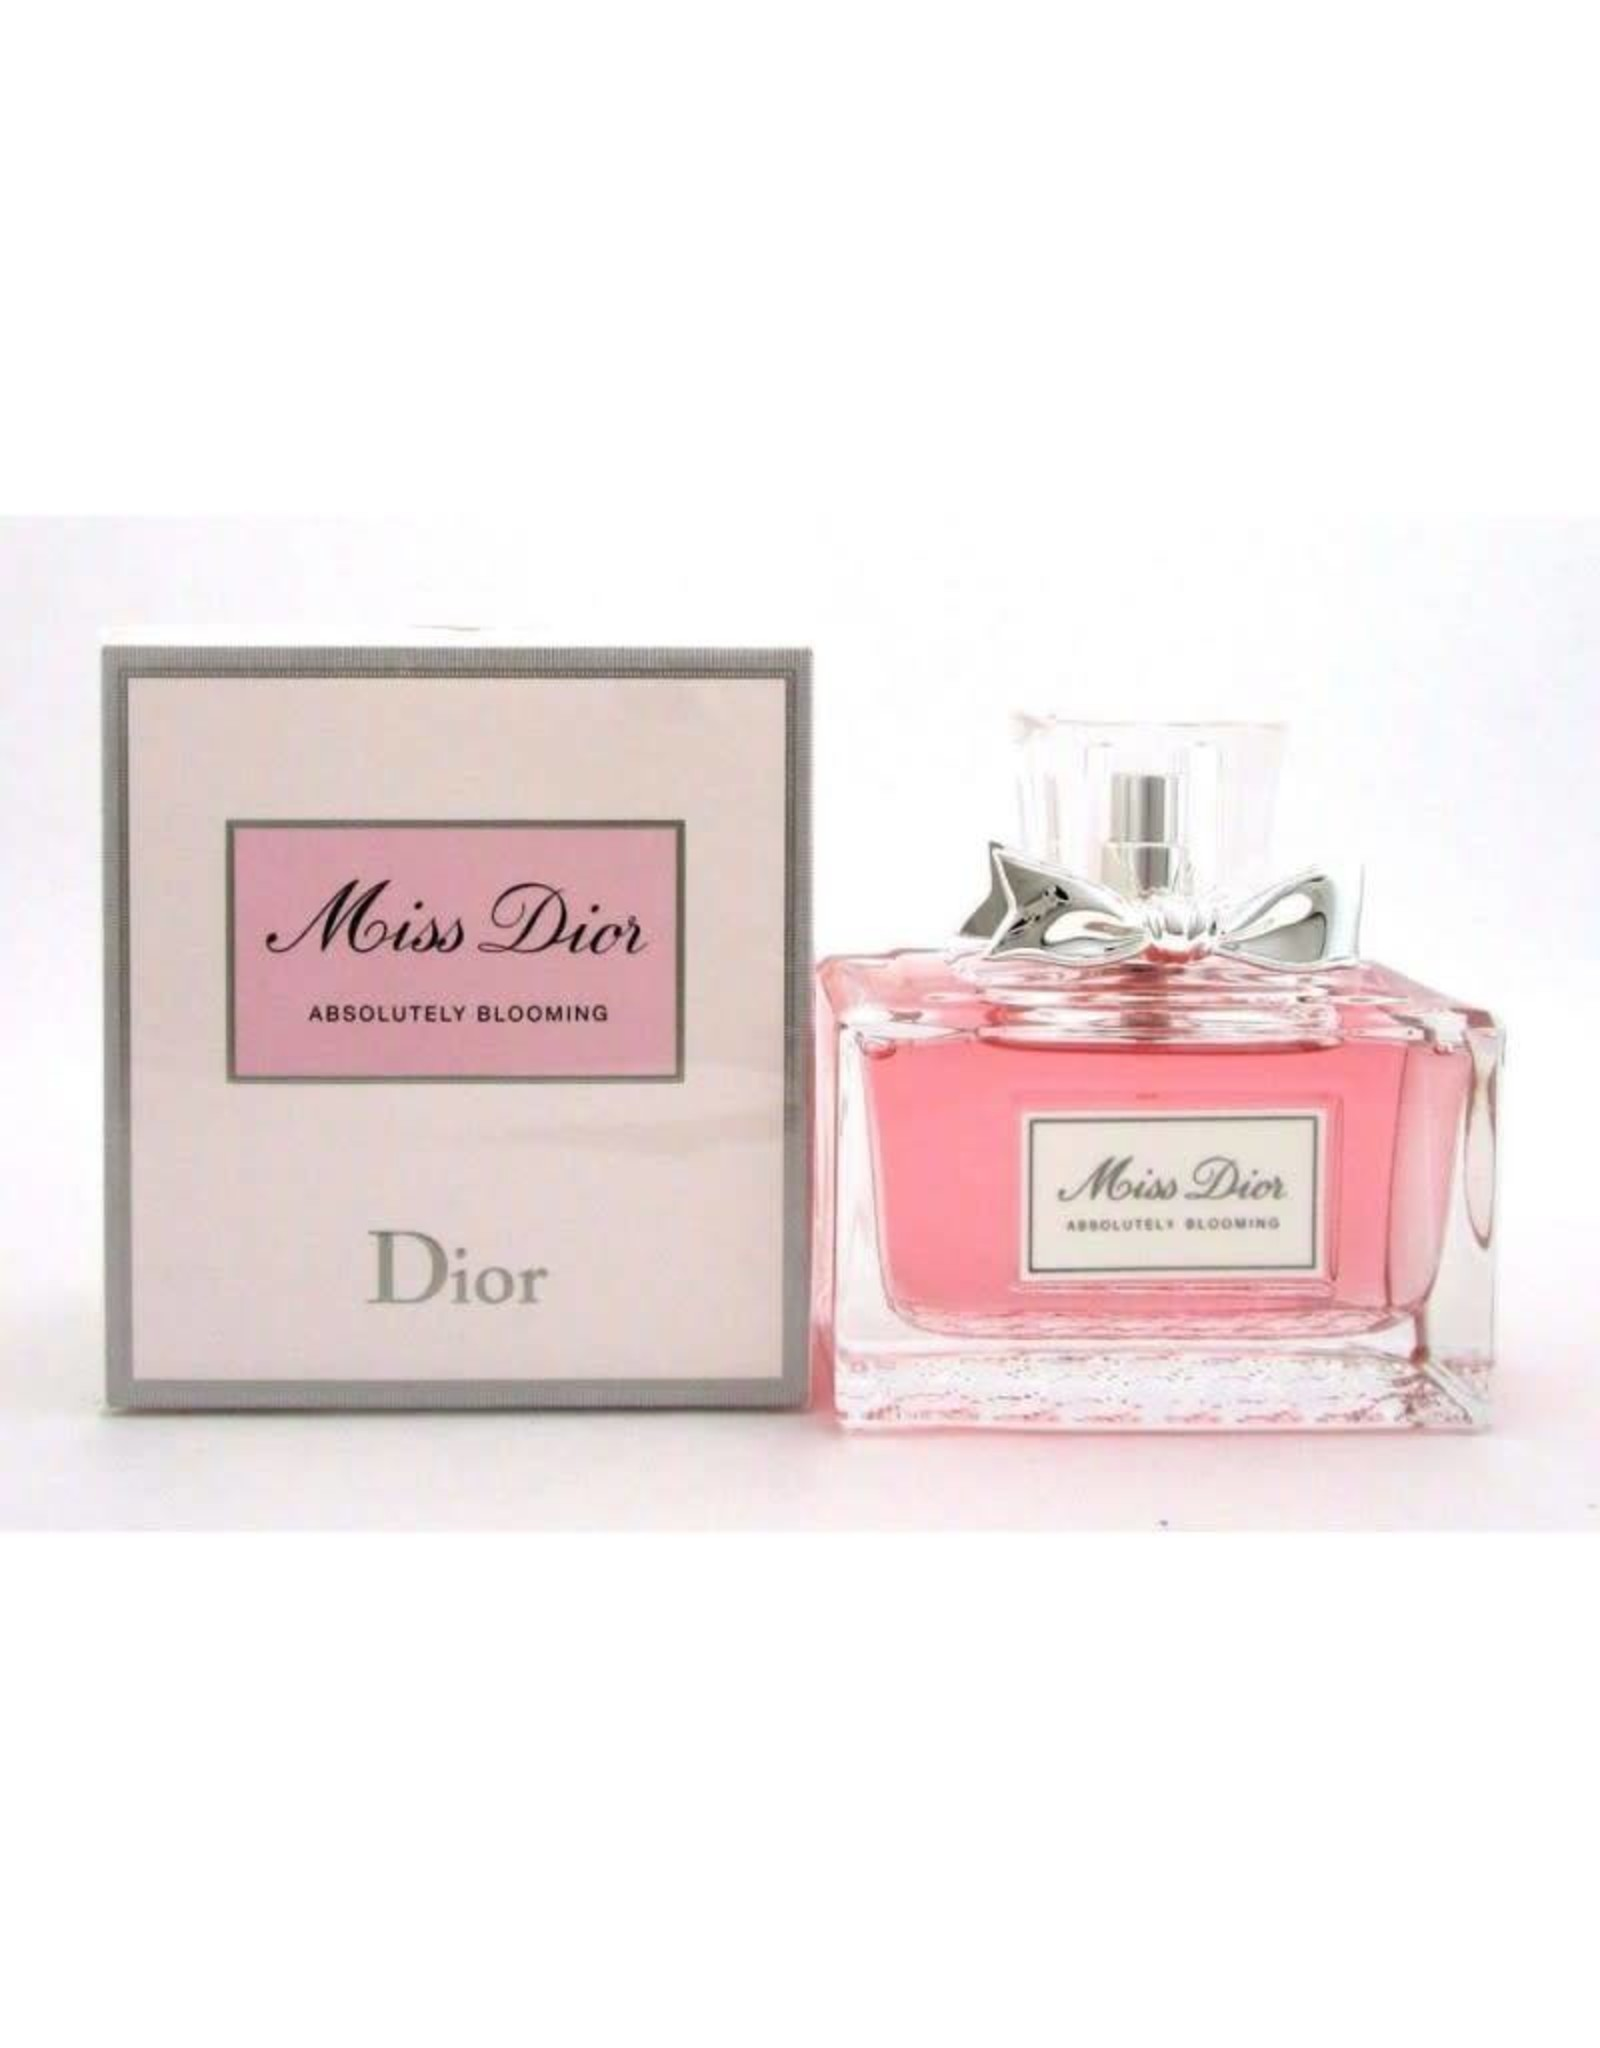 CHRISTIAN DIOR CHRISTIAN DIOR MISS DIOR ABSOLUTELY BLOOMING